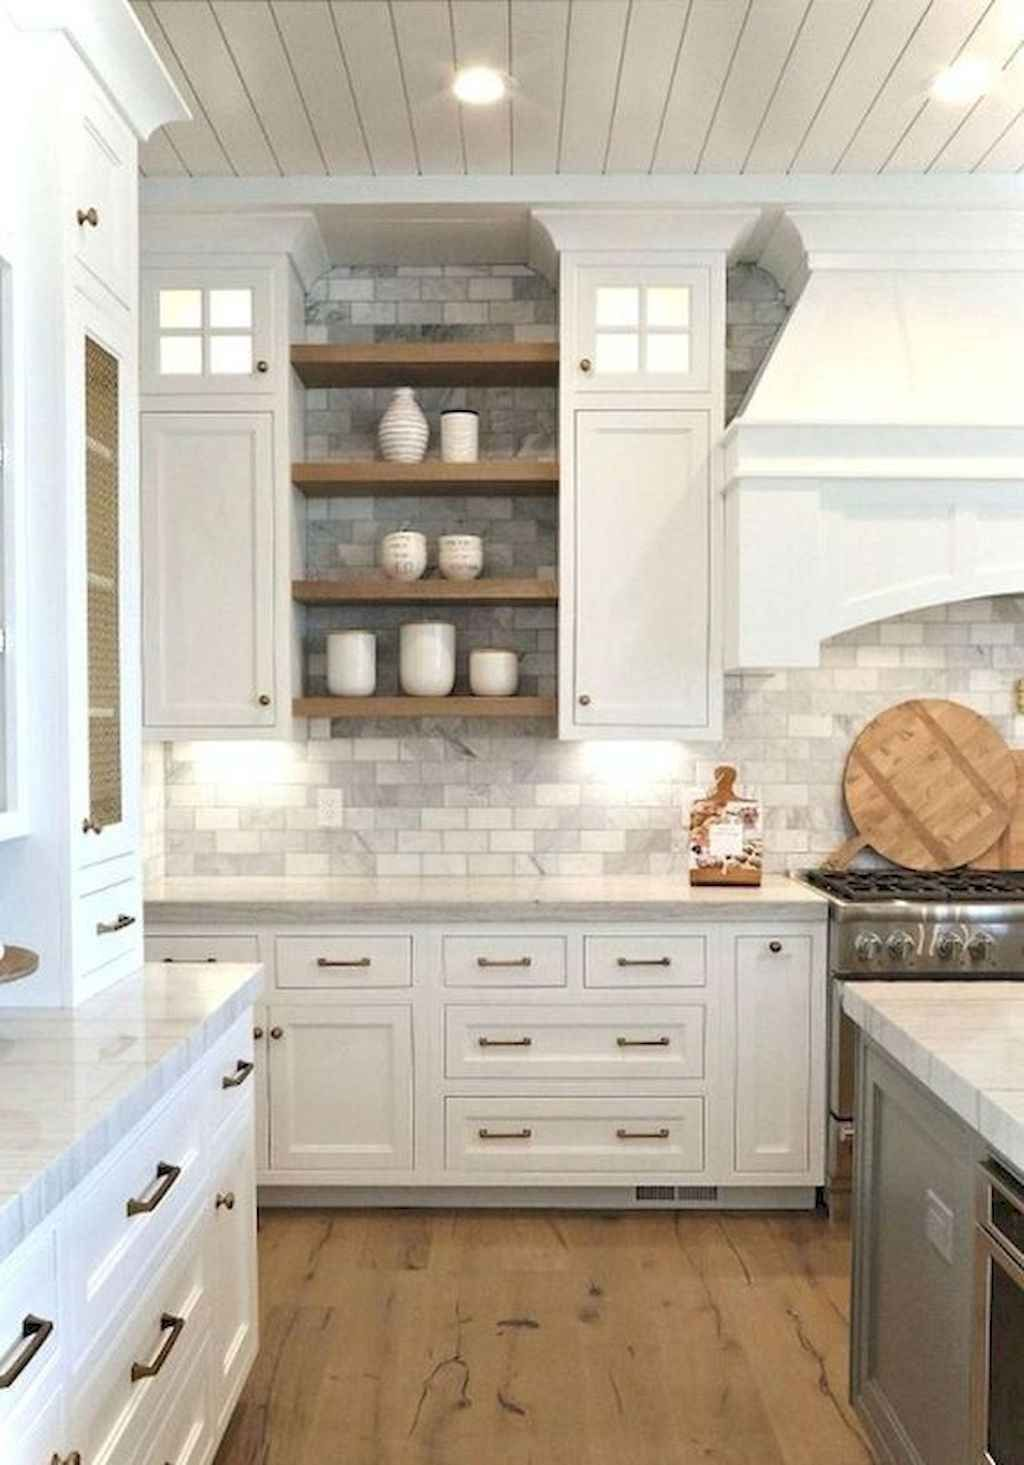 35 Beautiful Examples Modern Farmhouse Kitchen Design Ideas For 2019 Moodecor Co Kitchen Cabinet Design New Kitchen Cabinets Farmhouse Kitchen Design